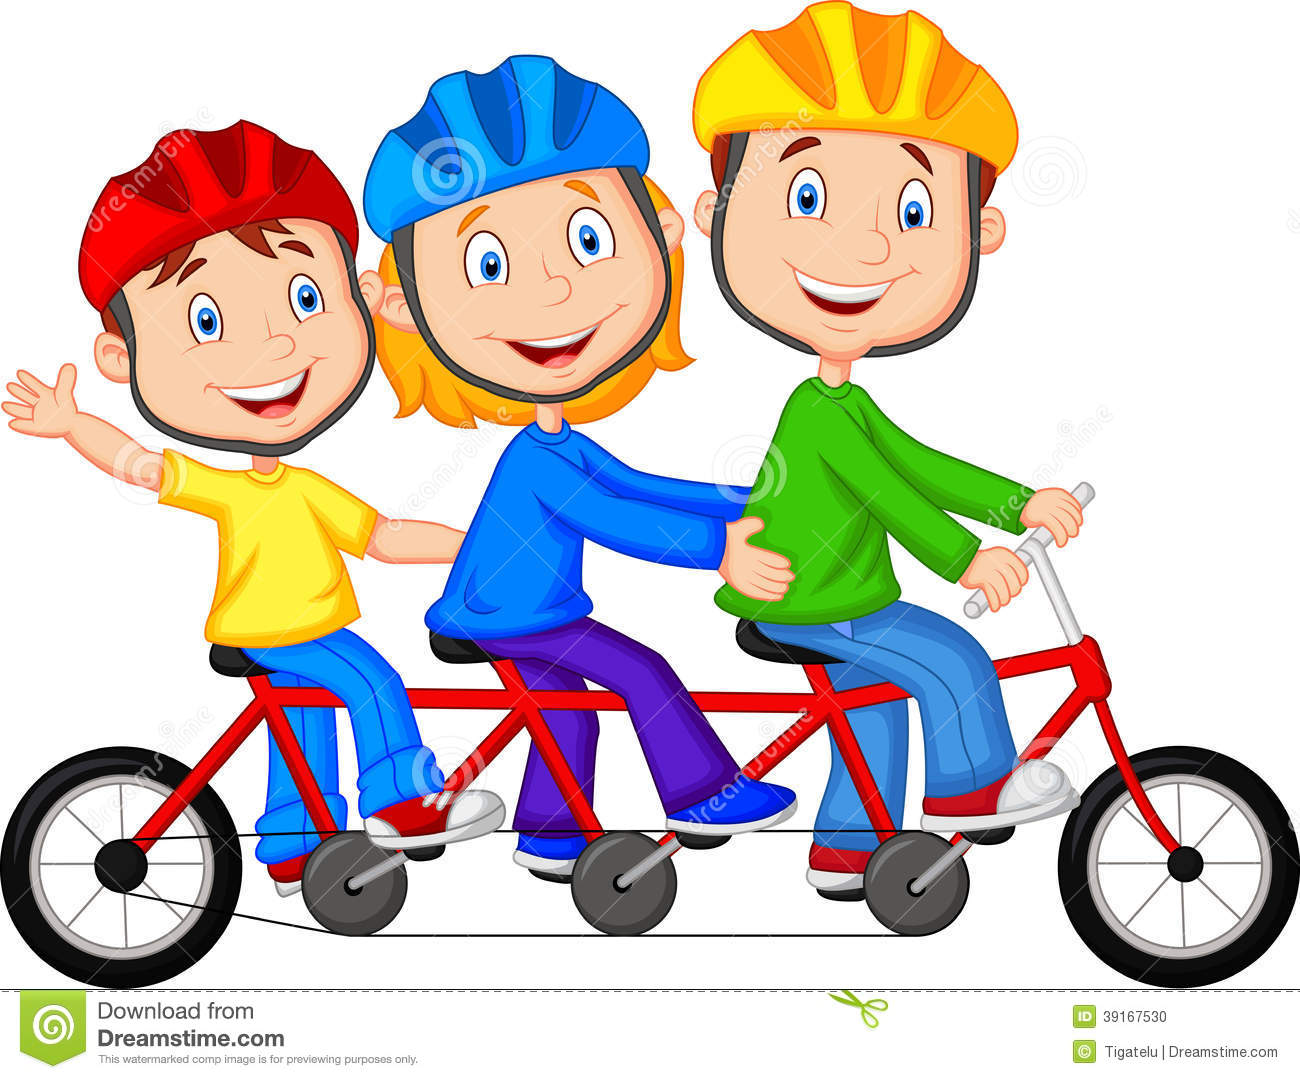 Tricycle clipart animated Bicycle Triple Vector Image Family